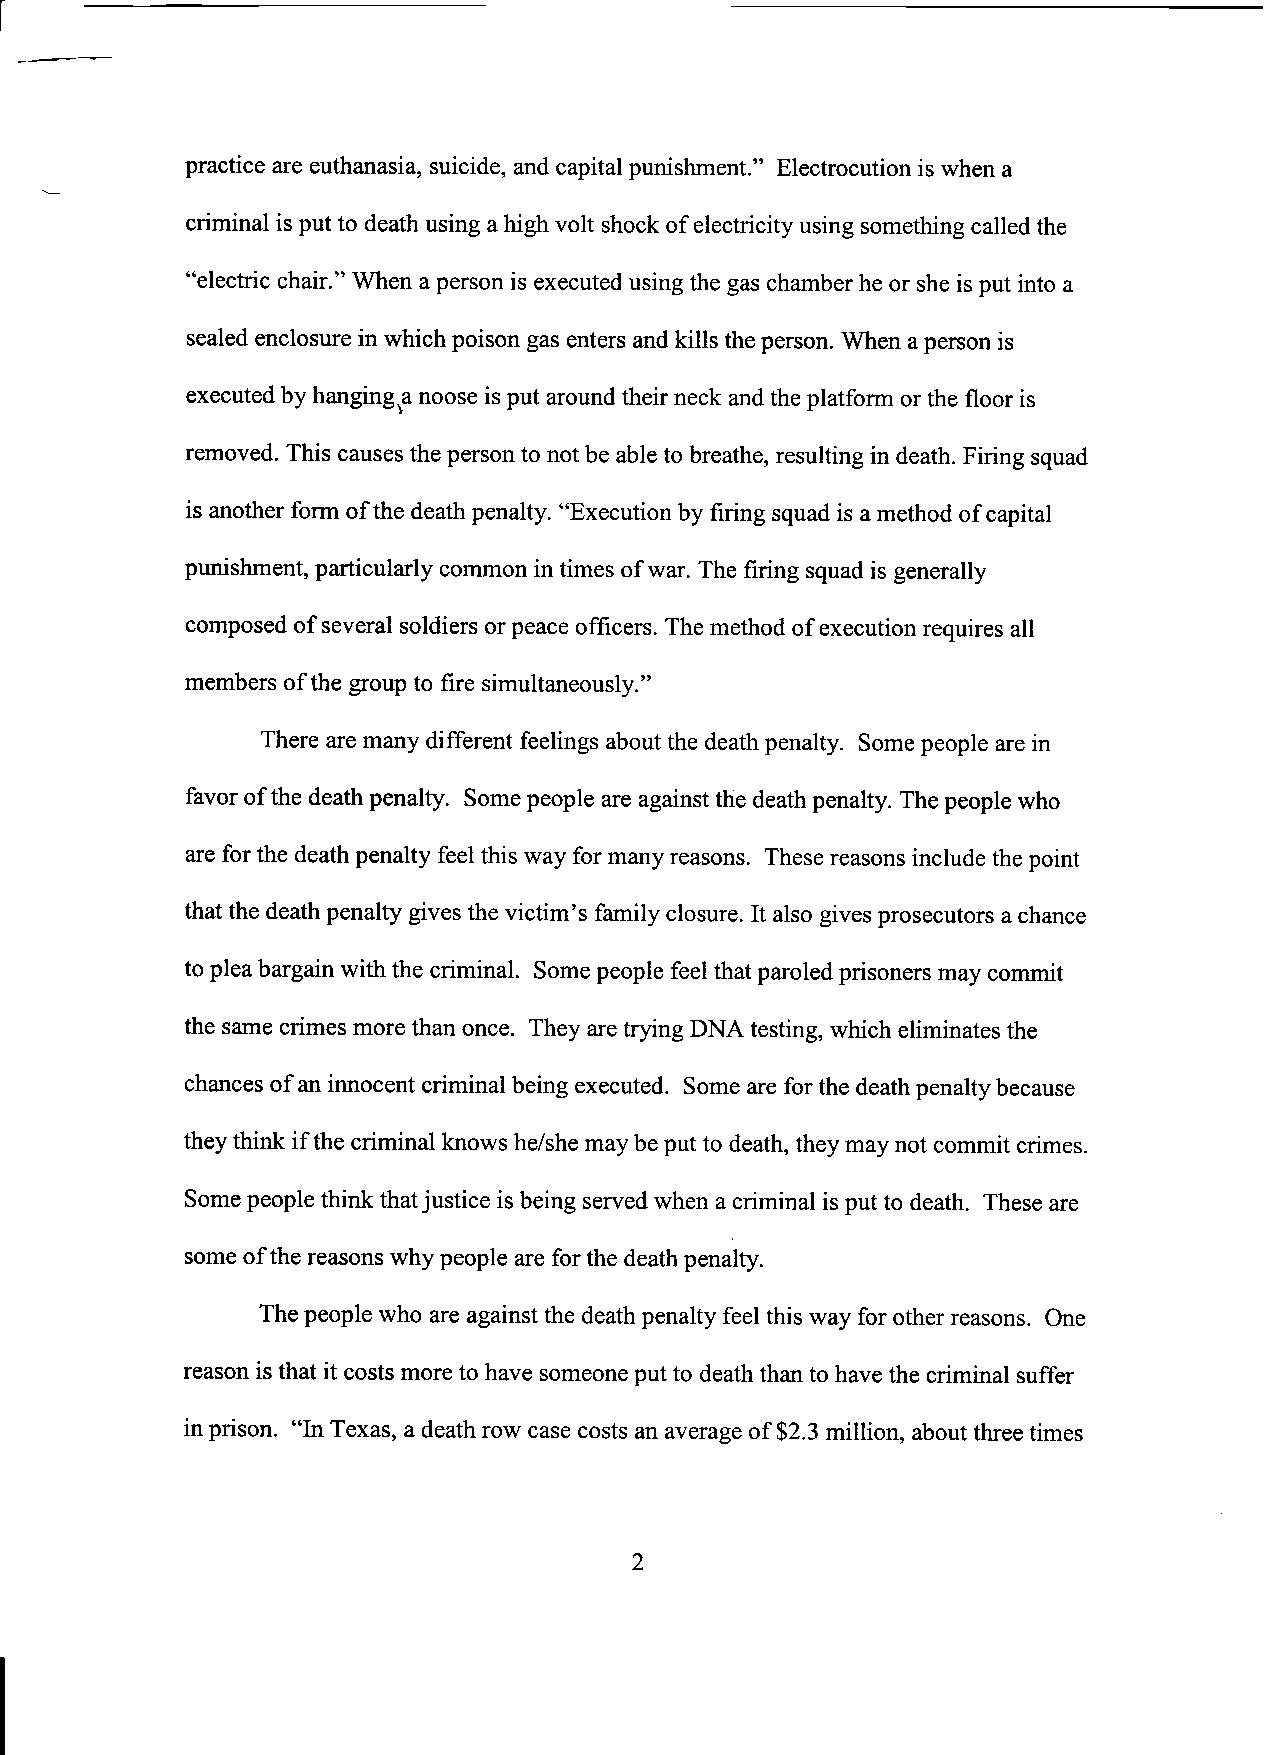 003 Against Death Penalty Essays Pg Essay Shocking Body Conclusion Anti Full